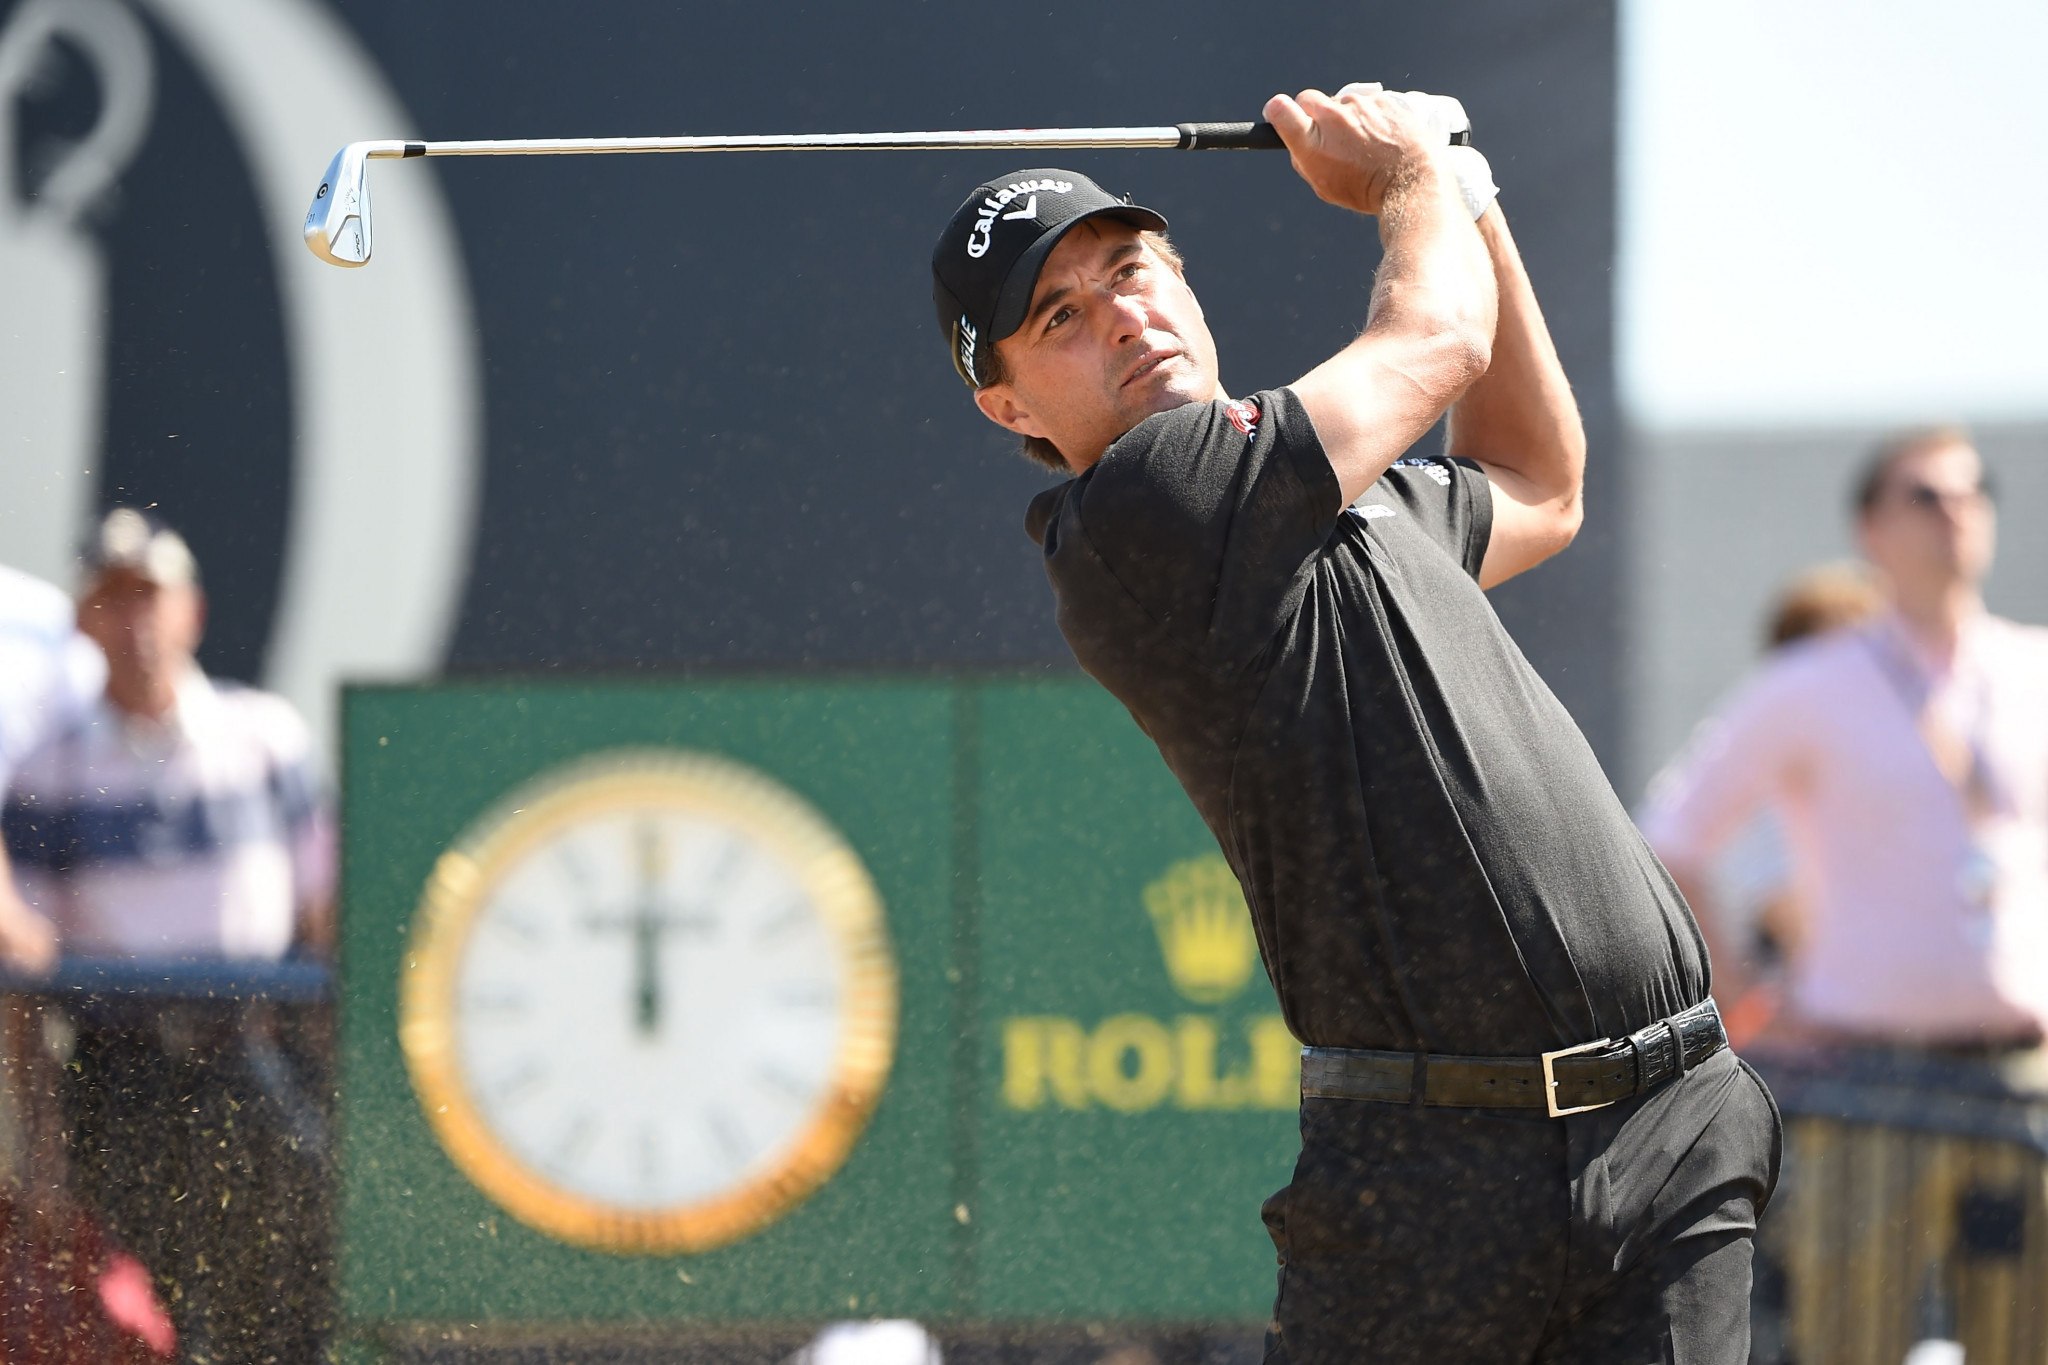 American Kisner leads after first day at The Open